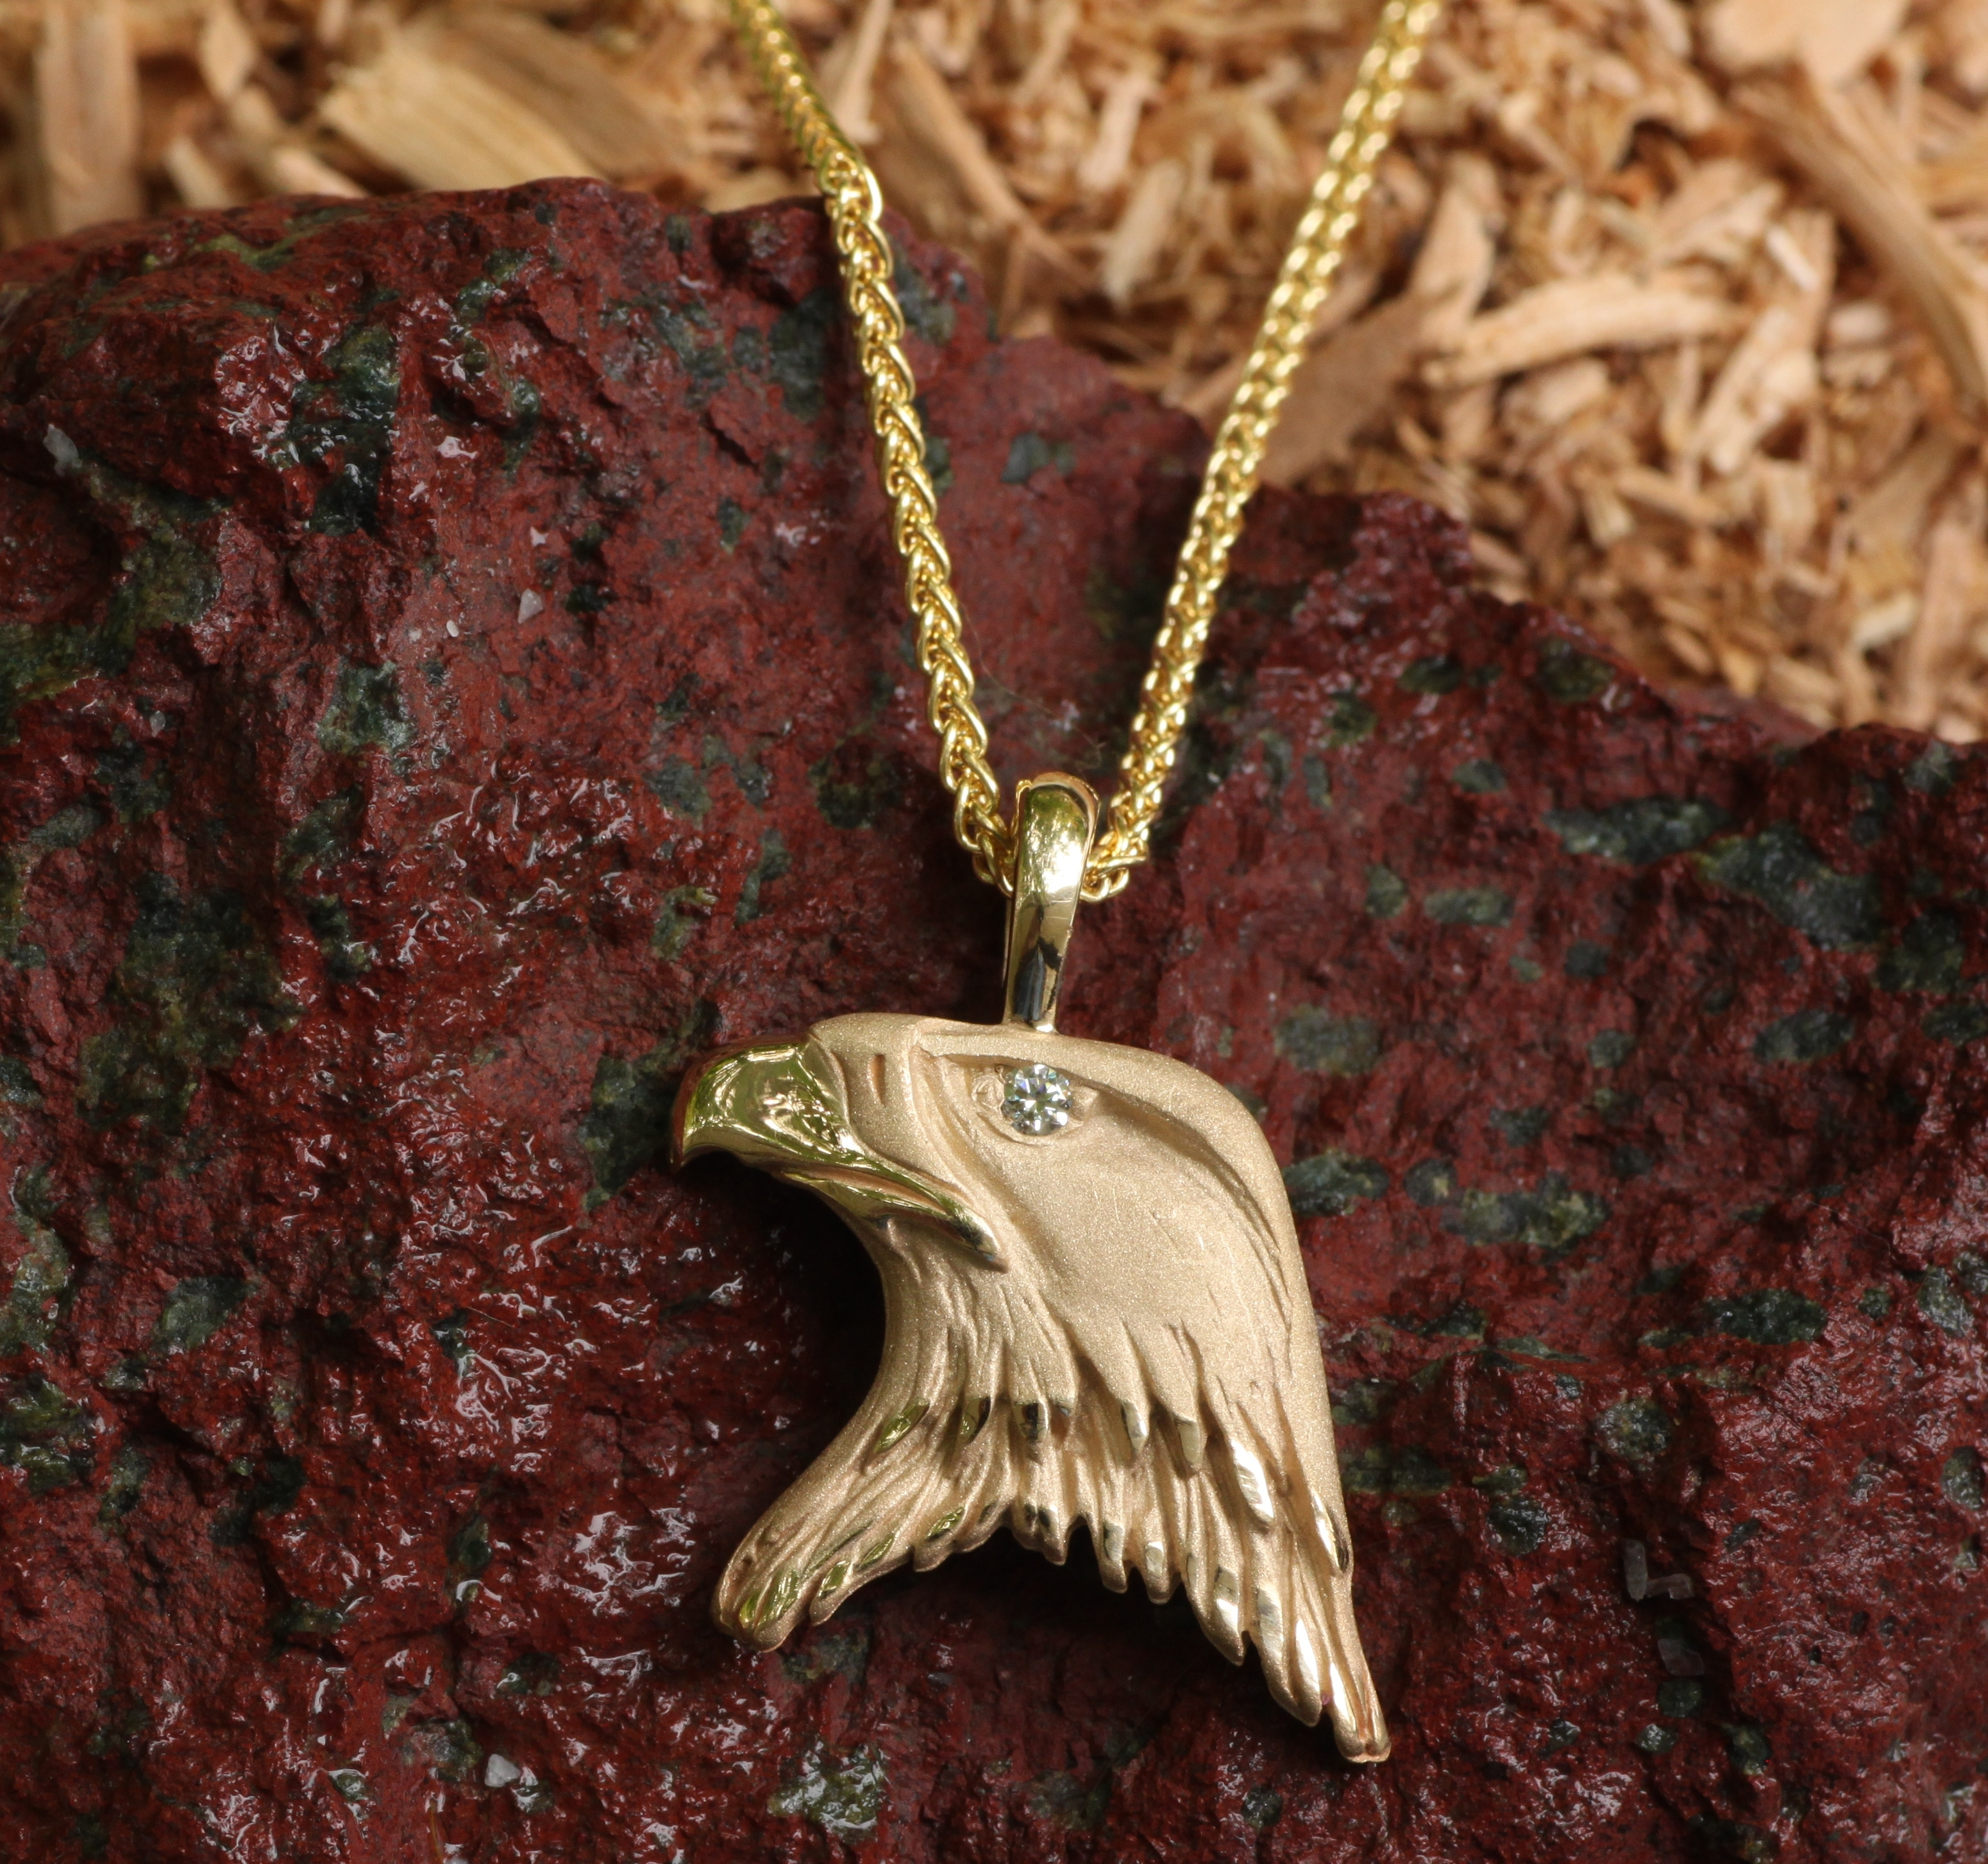 Wild Bald Eagle Pendant in 14 kt yellow gold with a Diamond